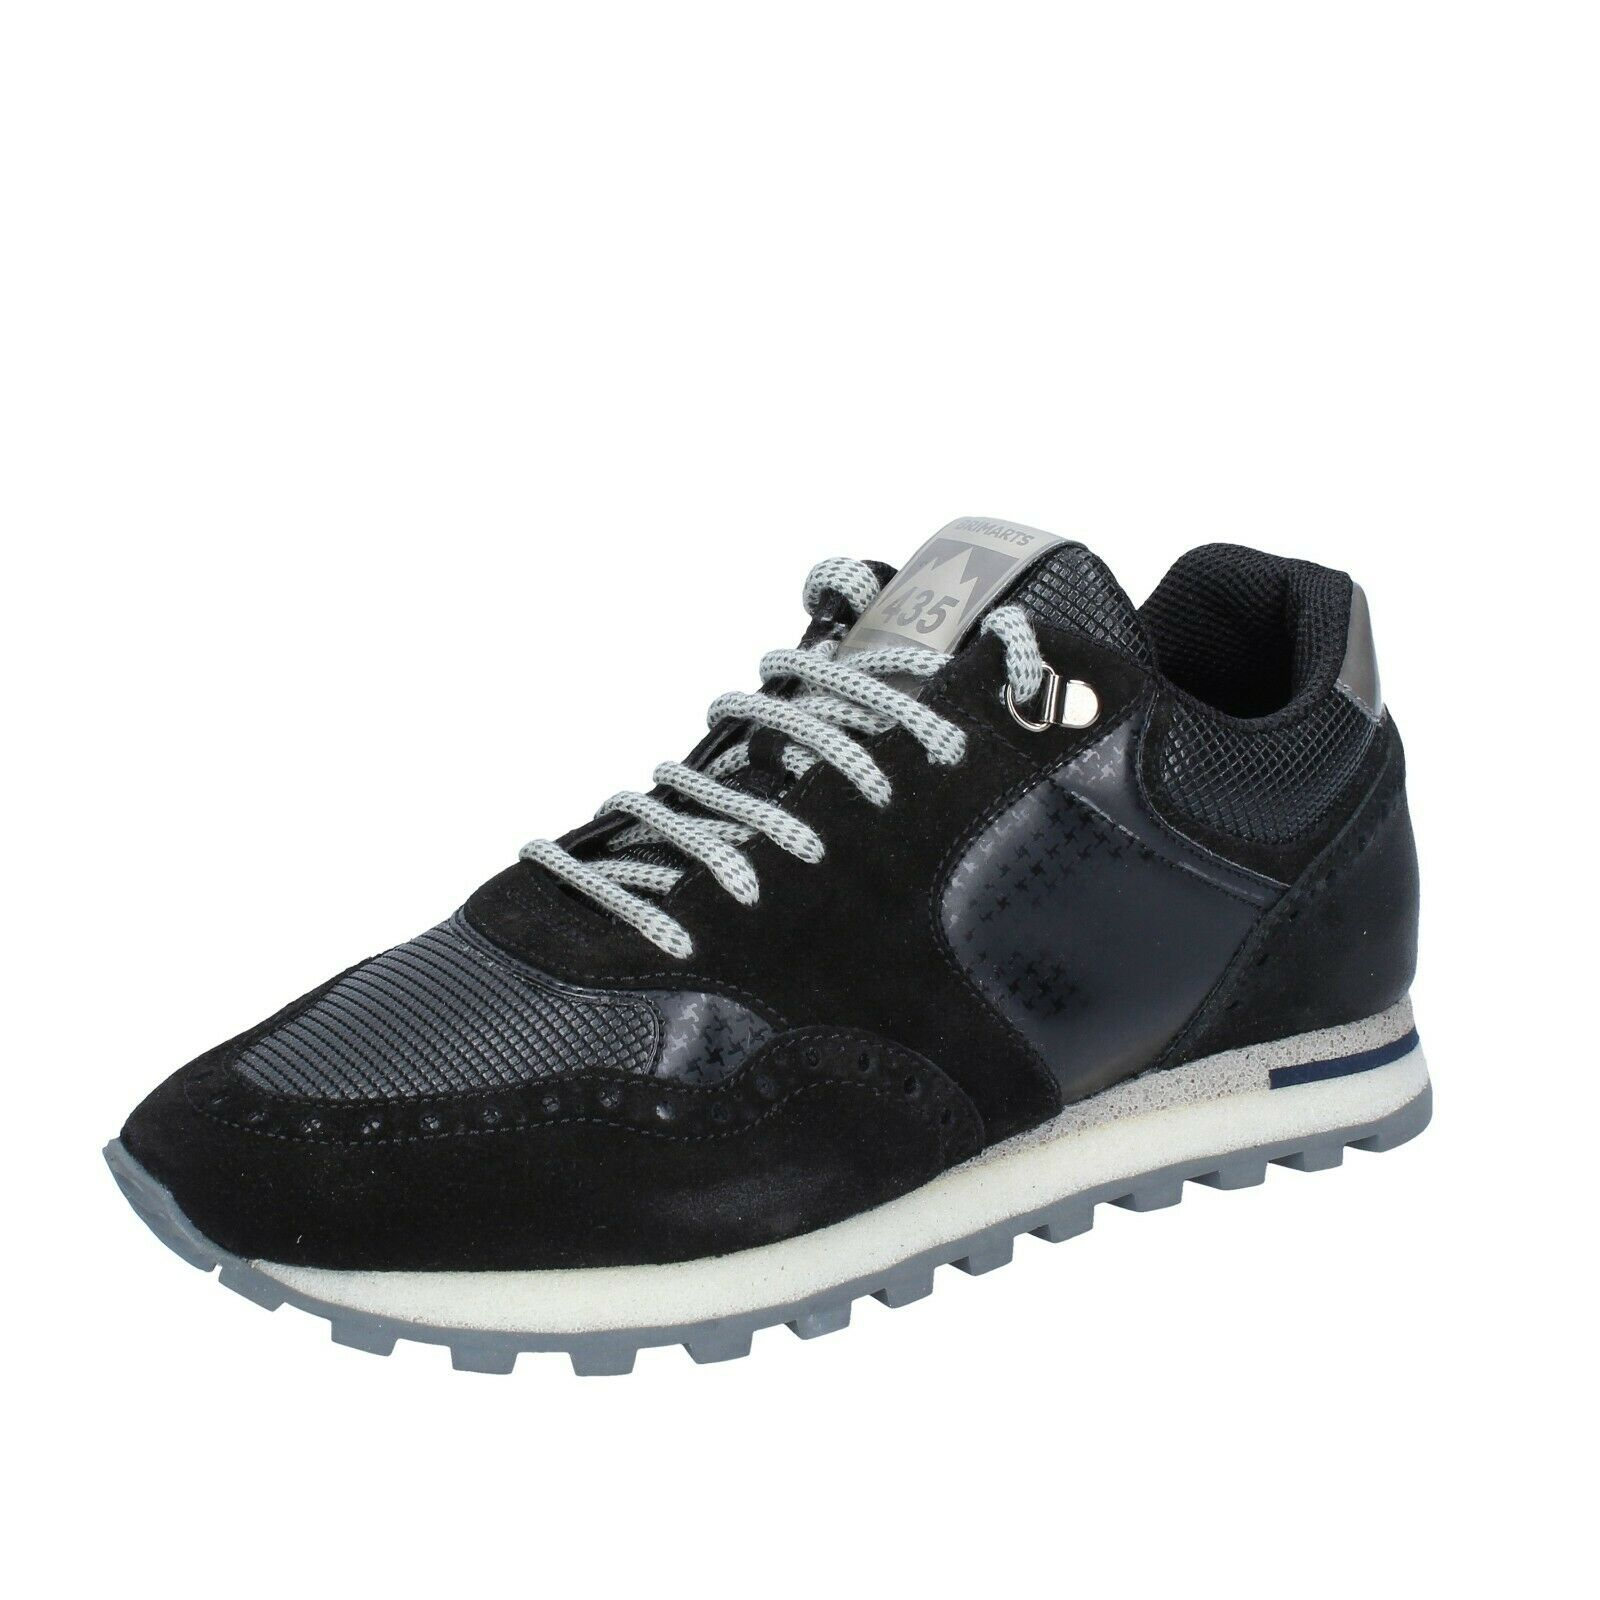 Mens shoes BRIMARTS 7 (EU 41) sneakers black suede leather BS334-41